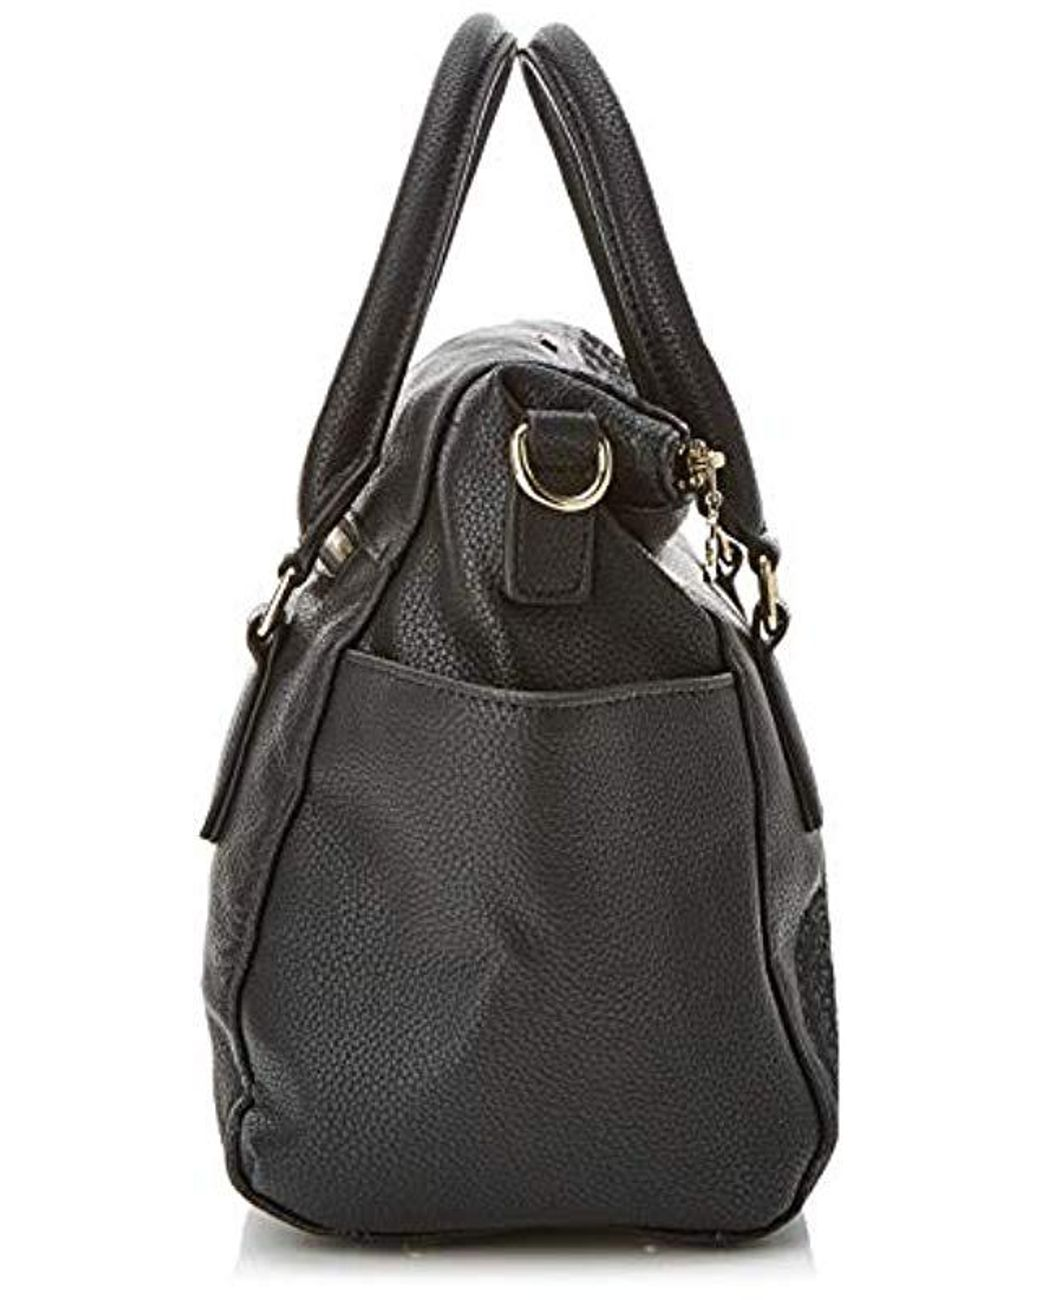 Bag Women's Black dark Bols Amber Loverty uF1cTJlK35